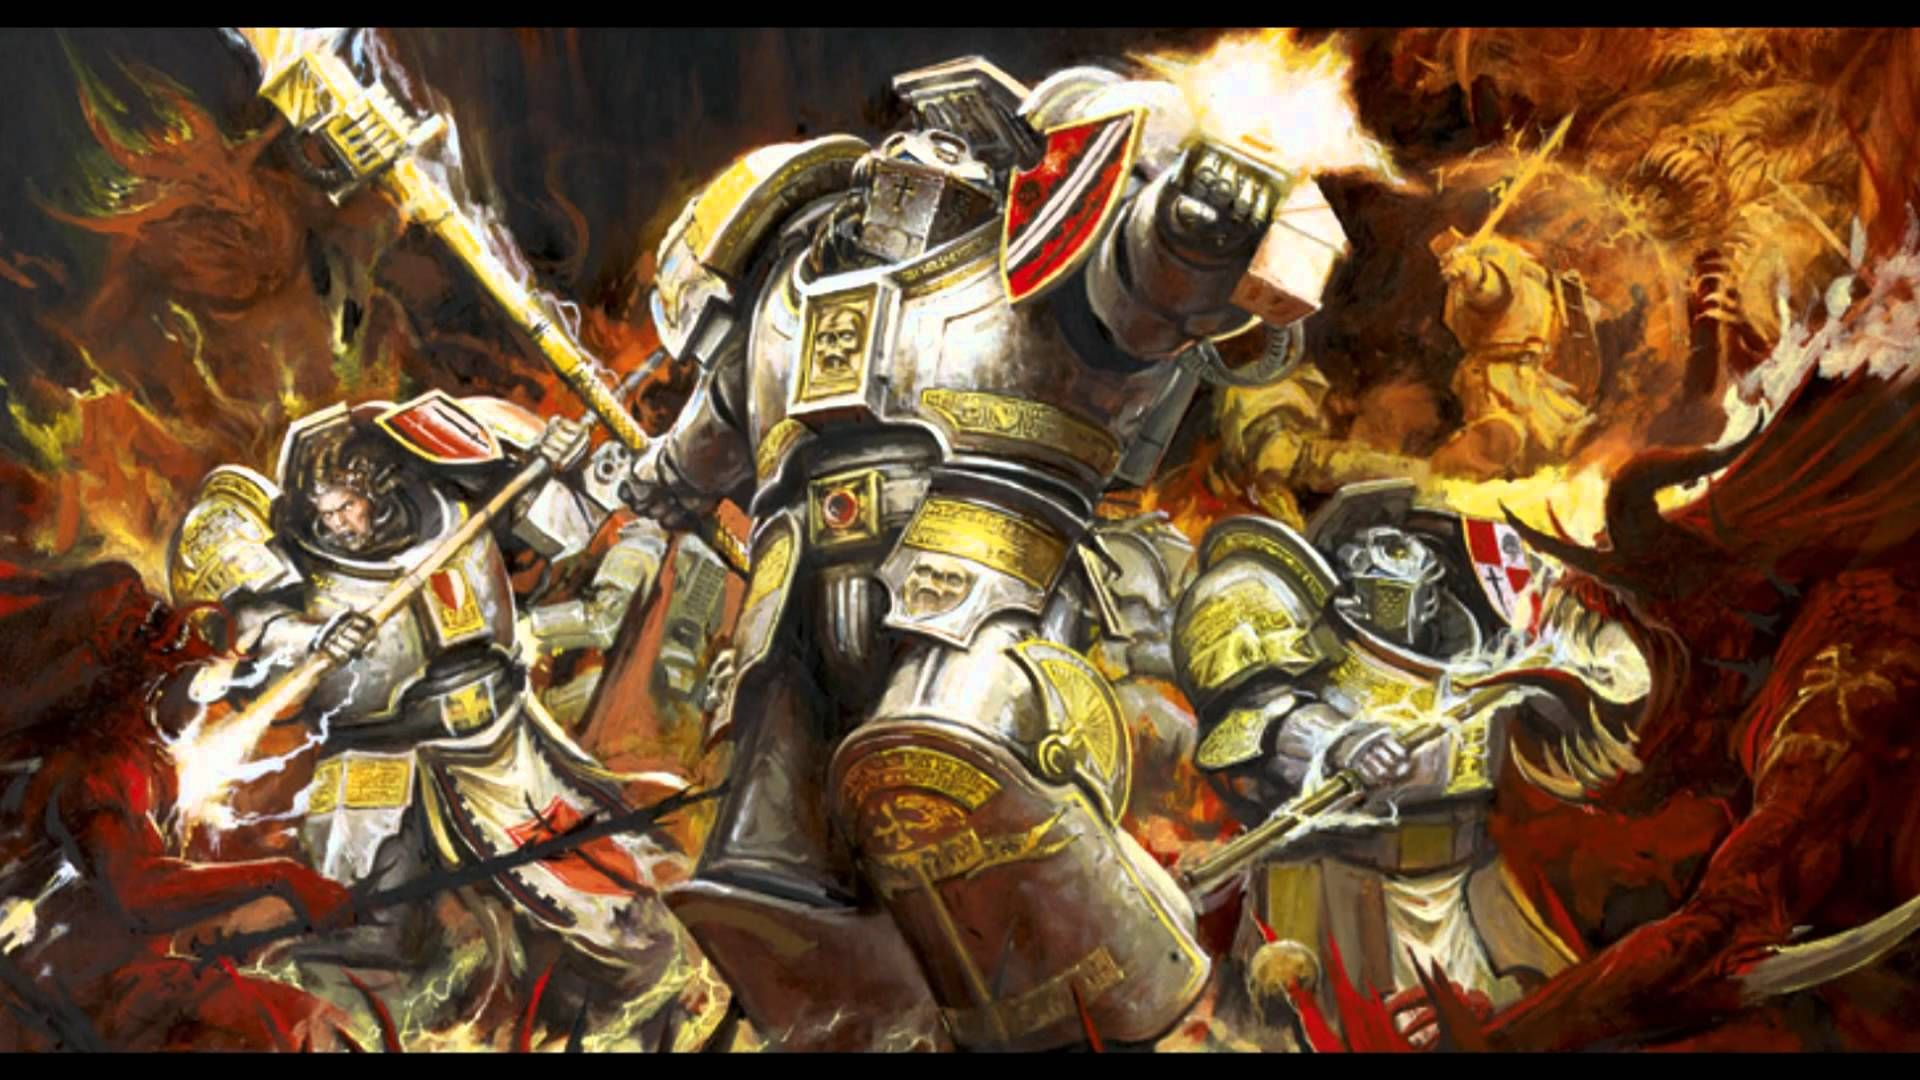 Warhammer 40k Grey Knights Wallpapers Phone In 2020 Grey Knights